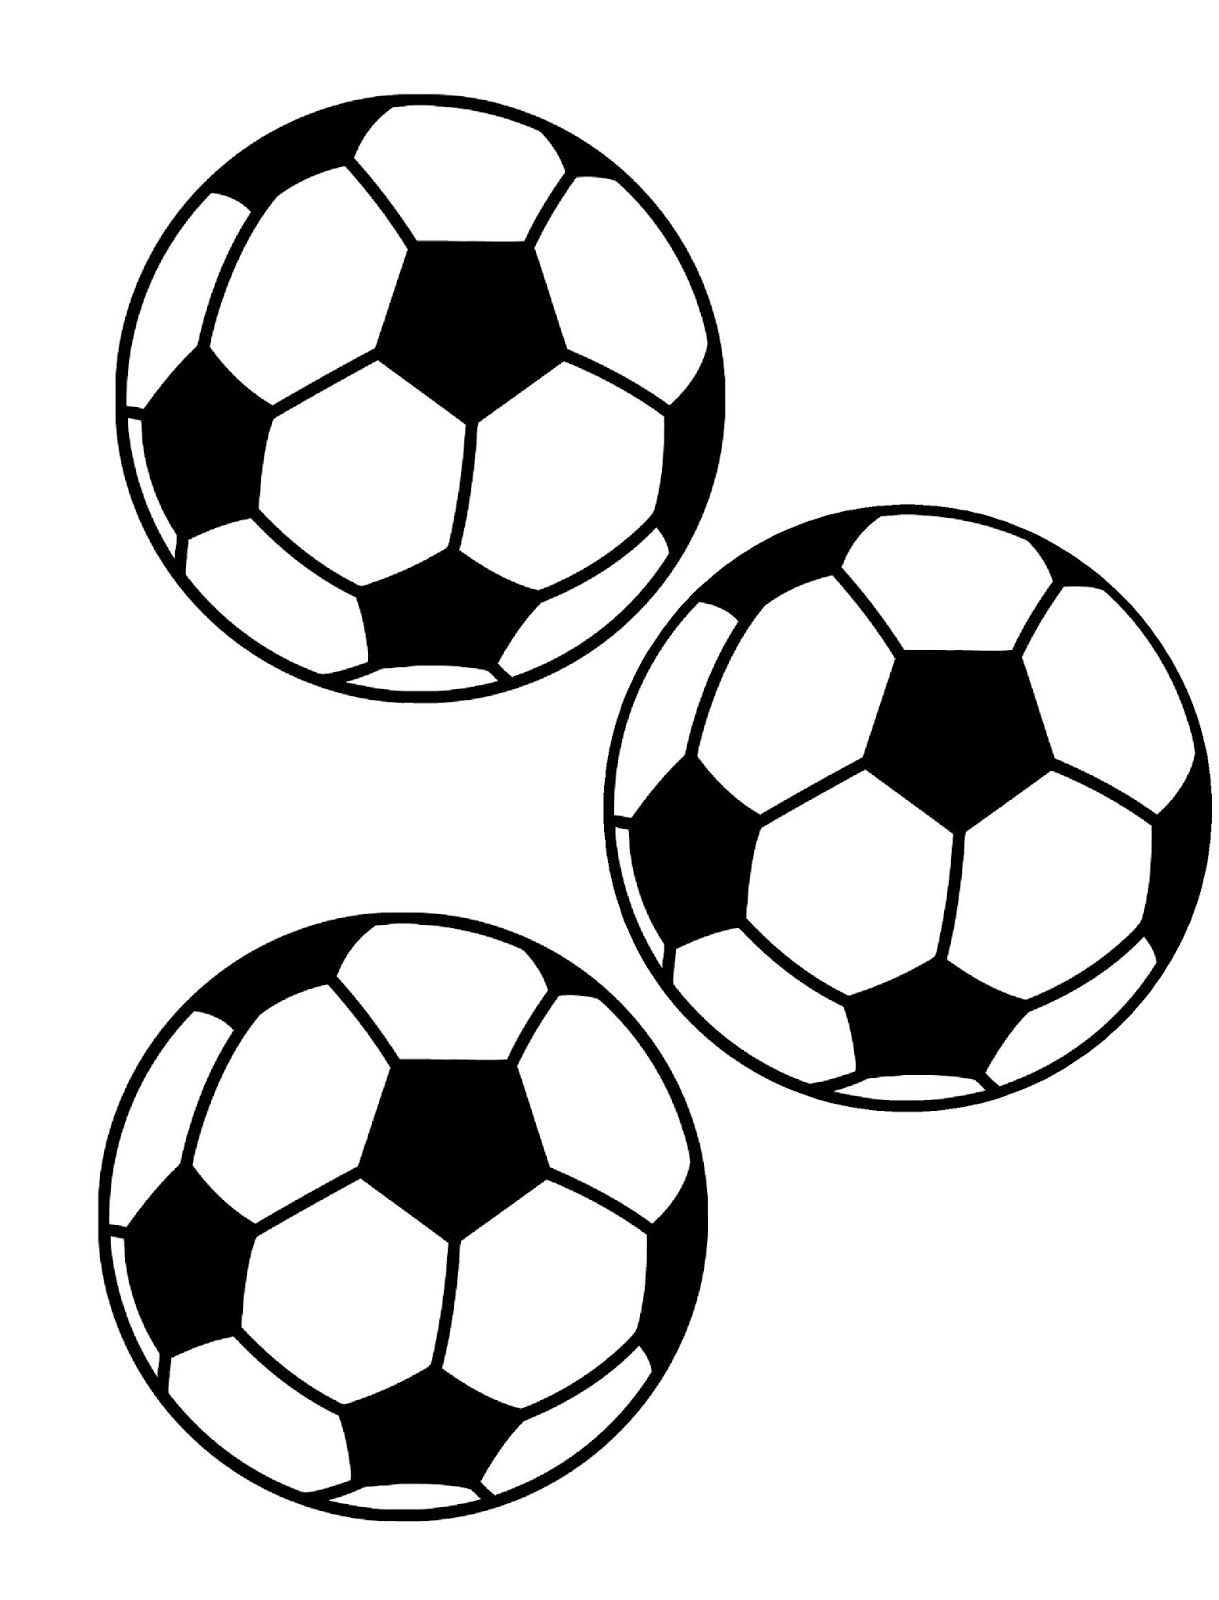 Printable Soccer Pictures